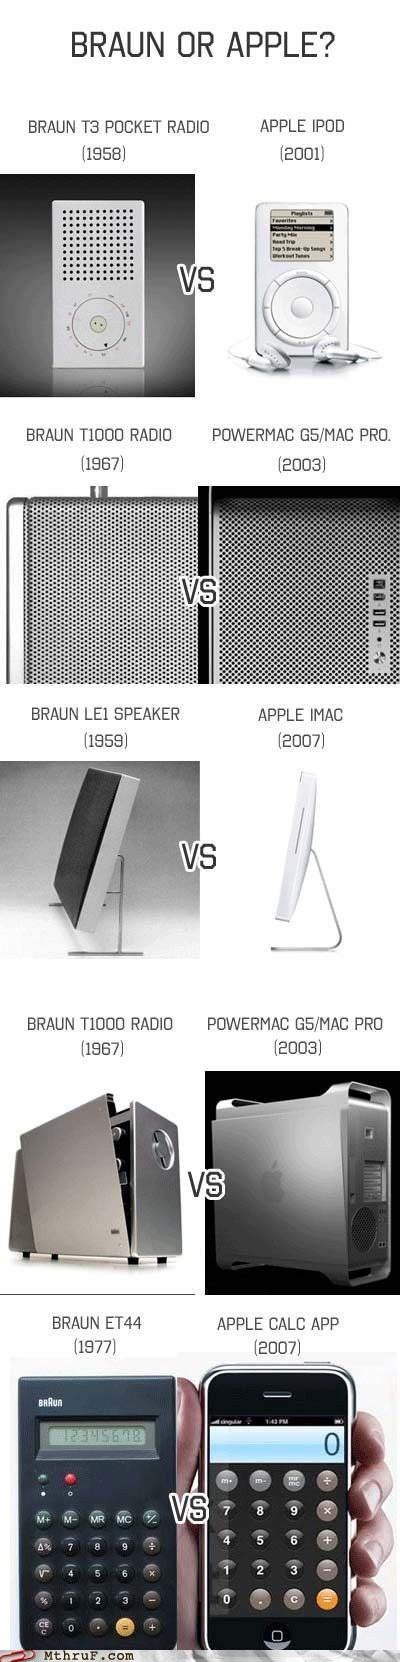 apple apple vs braun braun braun vs apple calculator iphone ipod le1 mac